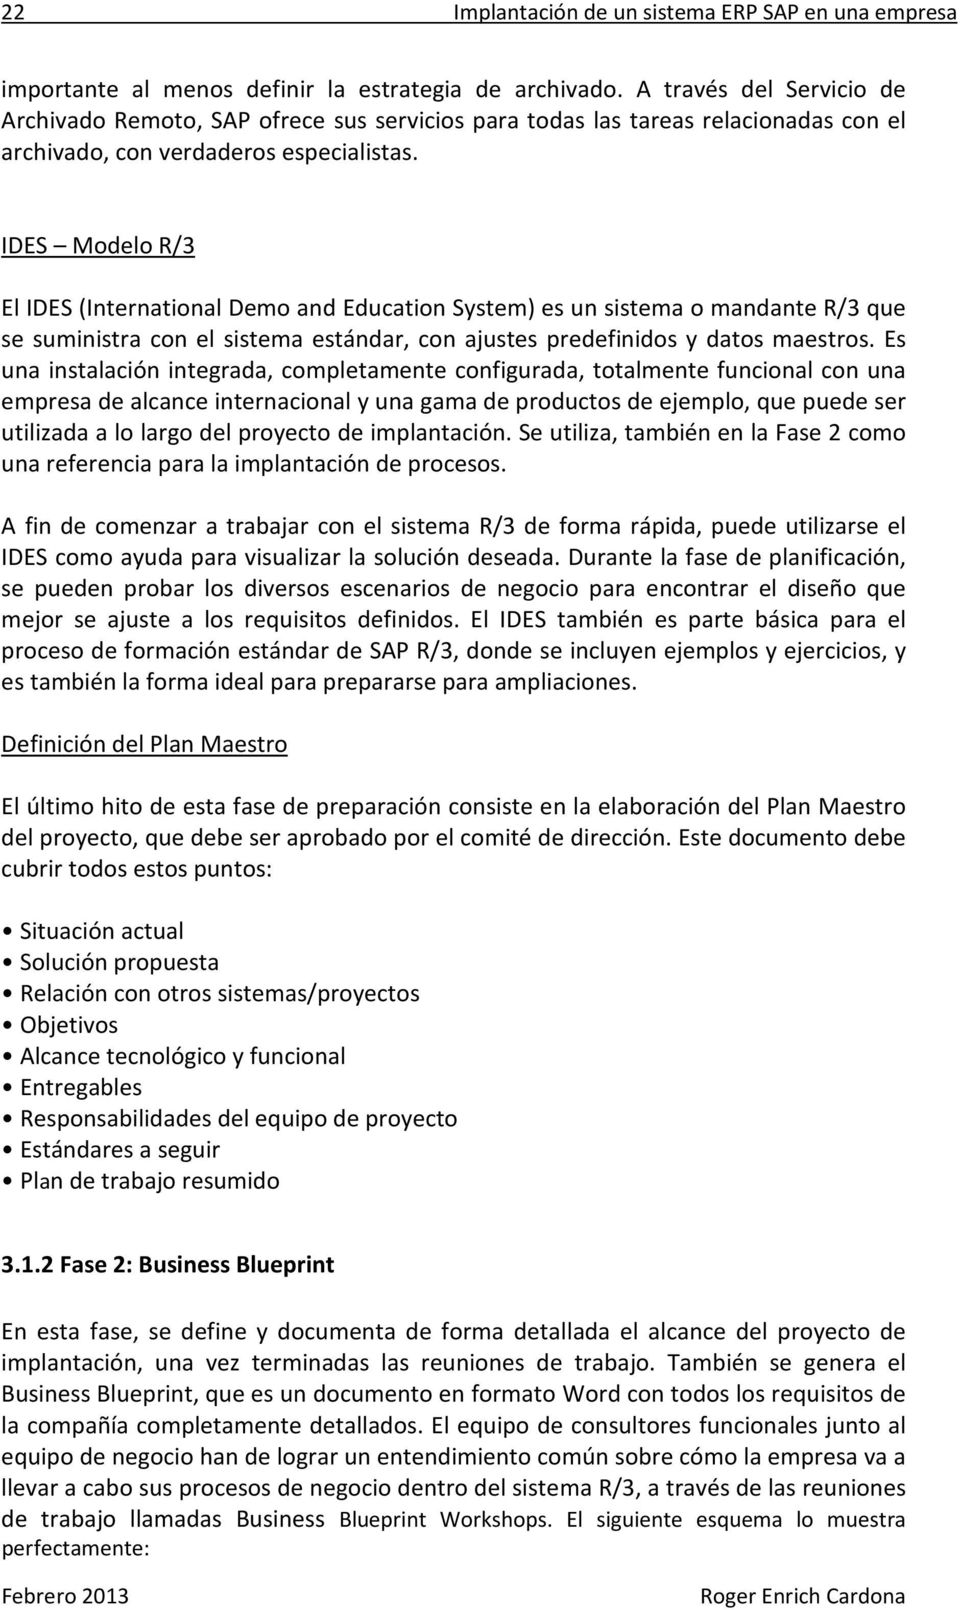 Implantacin de un sistema erp sap en una empresa pdf ides modelo r3 el ides international demo and education system es un malvernweather